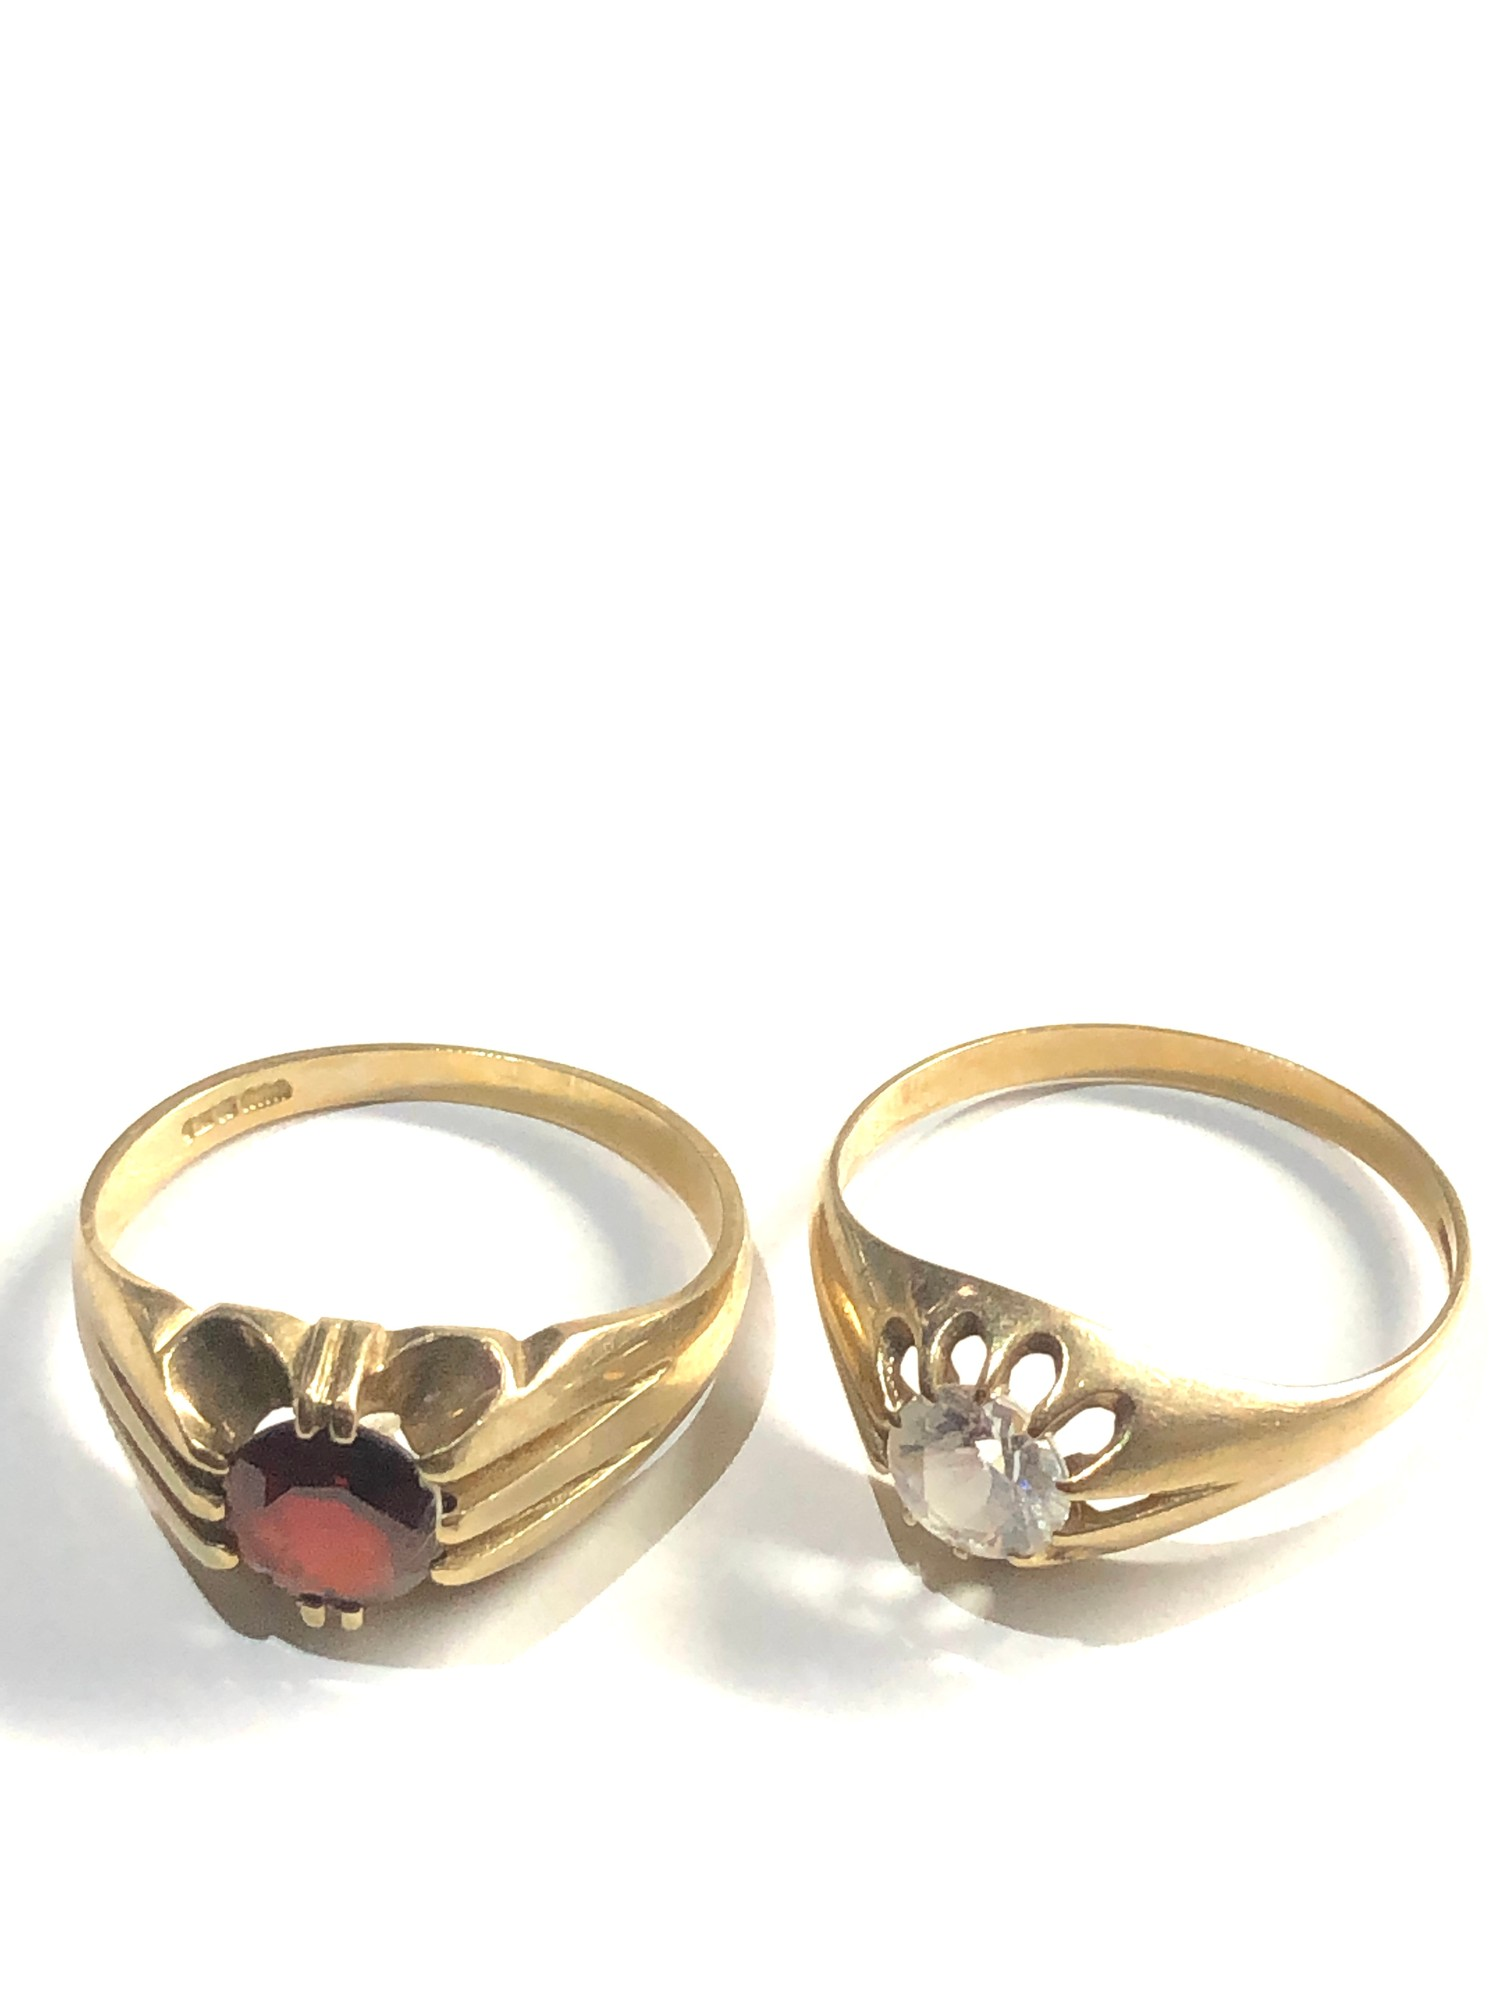 2 x 9ct gold gypsy rings 5.6g - Image 2 of 3